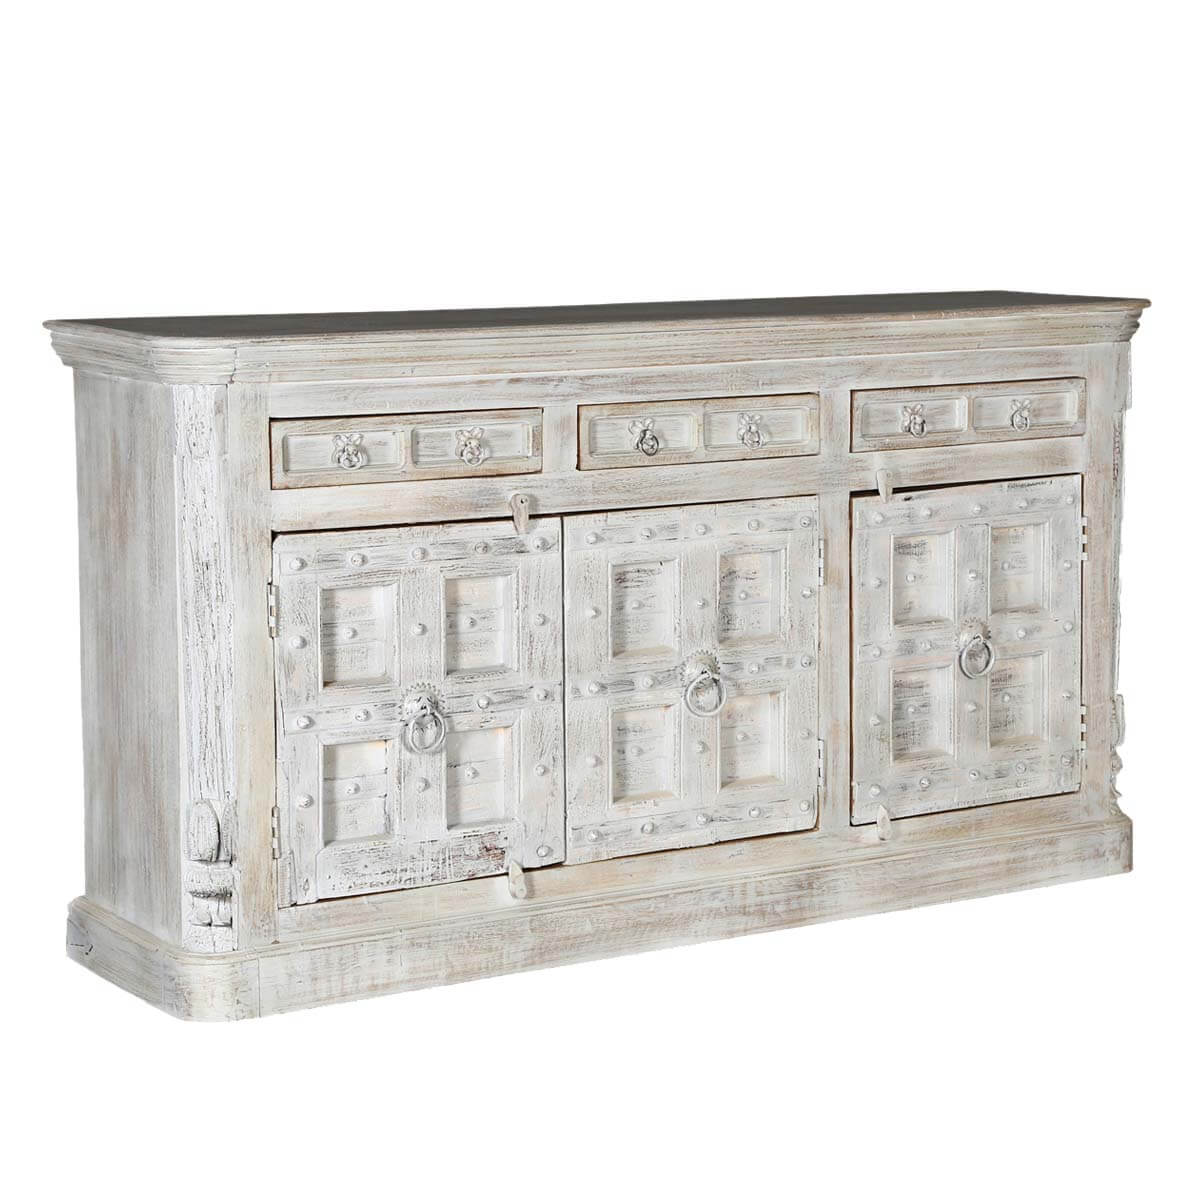 Palazzo Rustic Solid Wood 3 Drawer Large Sideboard Cabinet